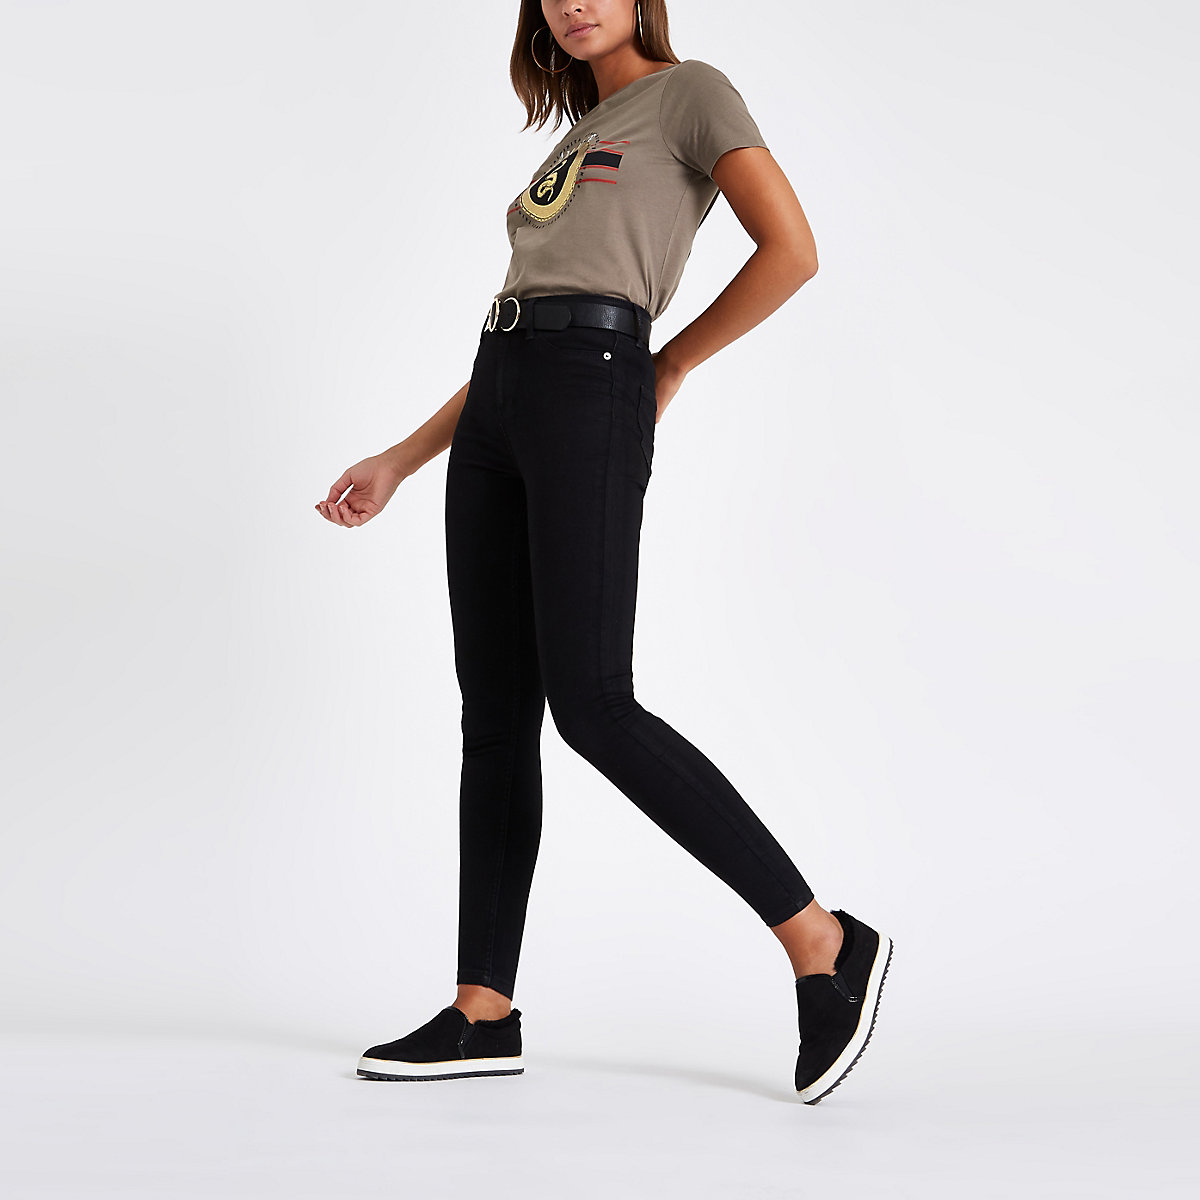 Khaki 'Amour' print fitted T-shirt